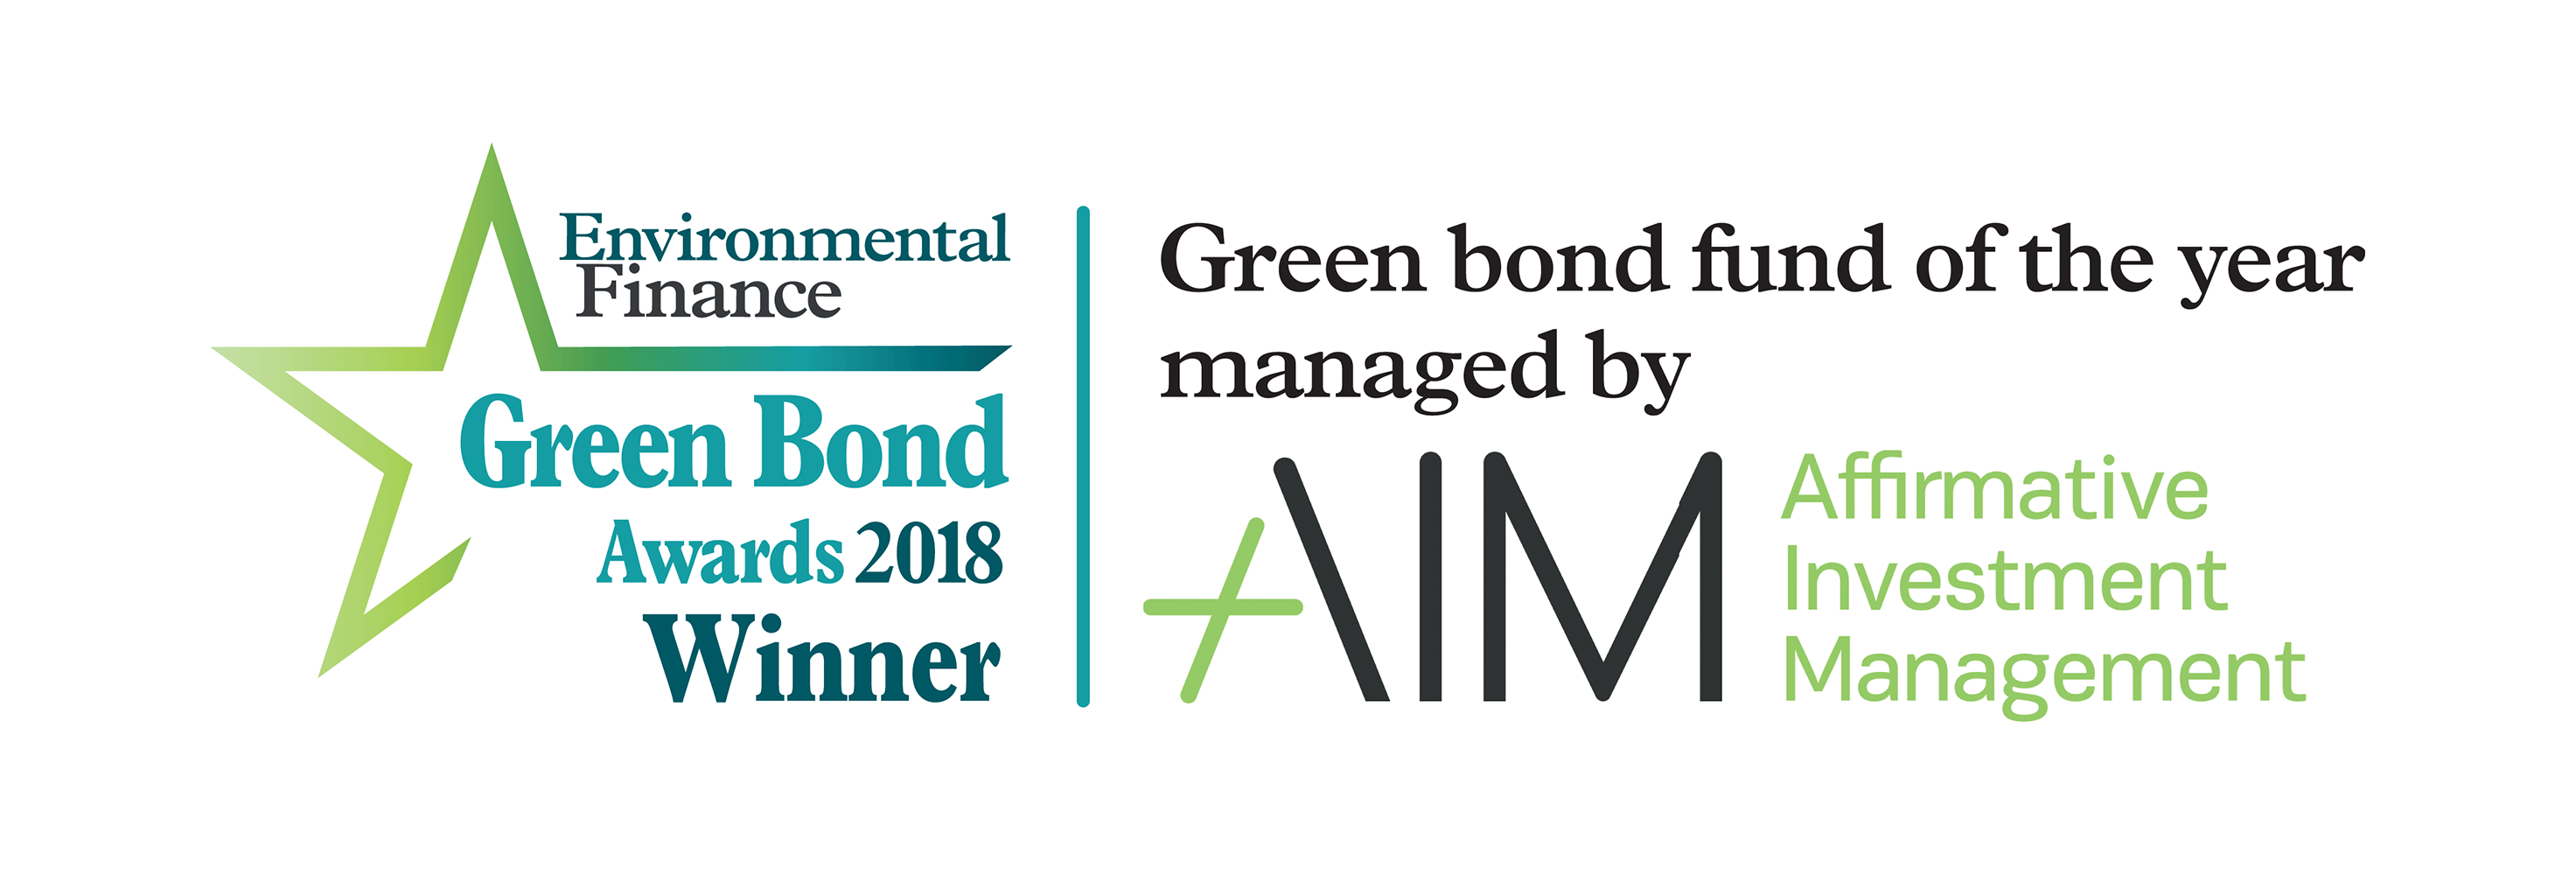 AIM Wins at the 2018 Green Bond Awards